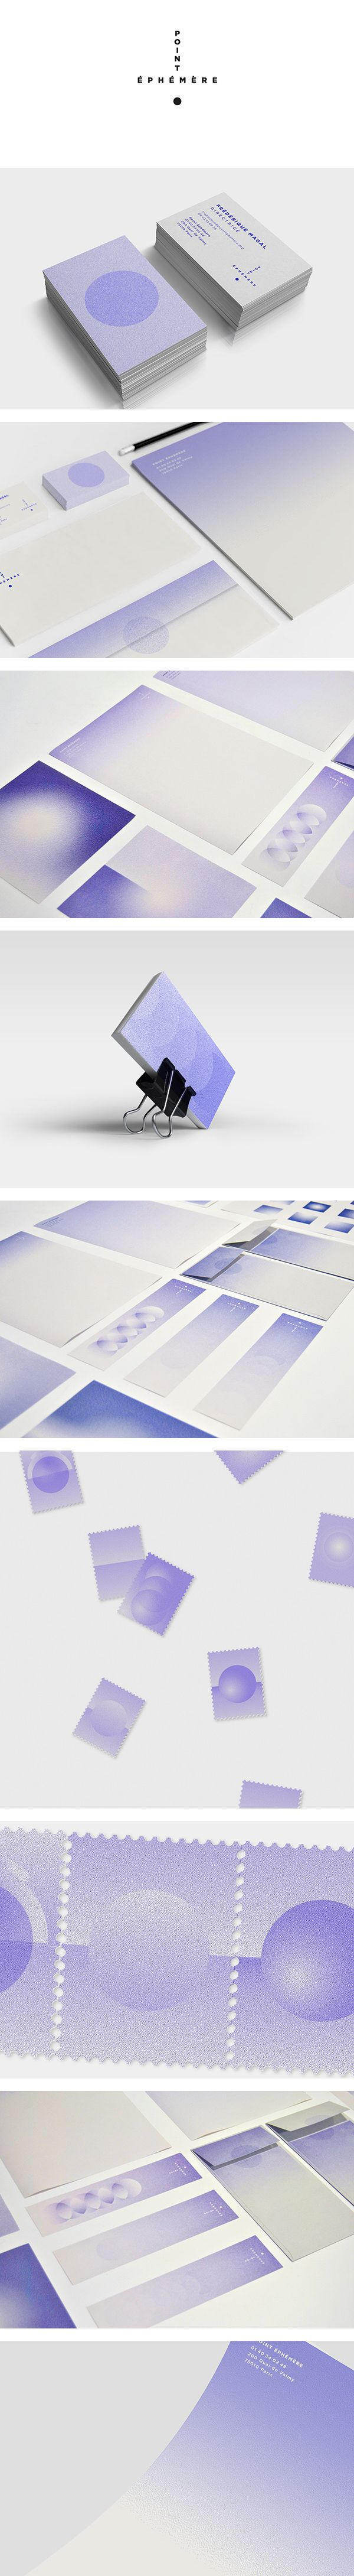 Point Éphémère